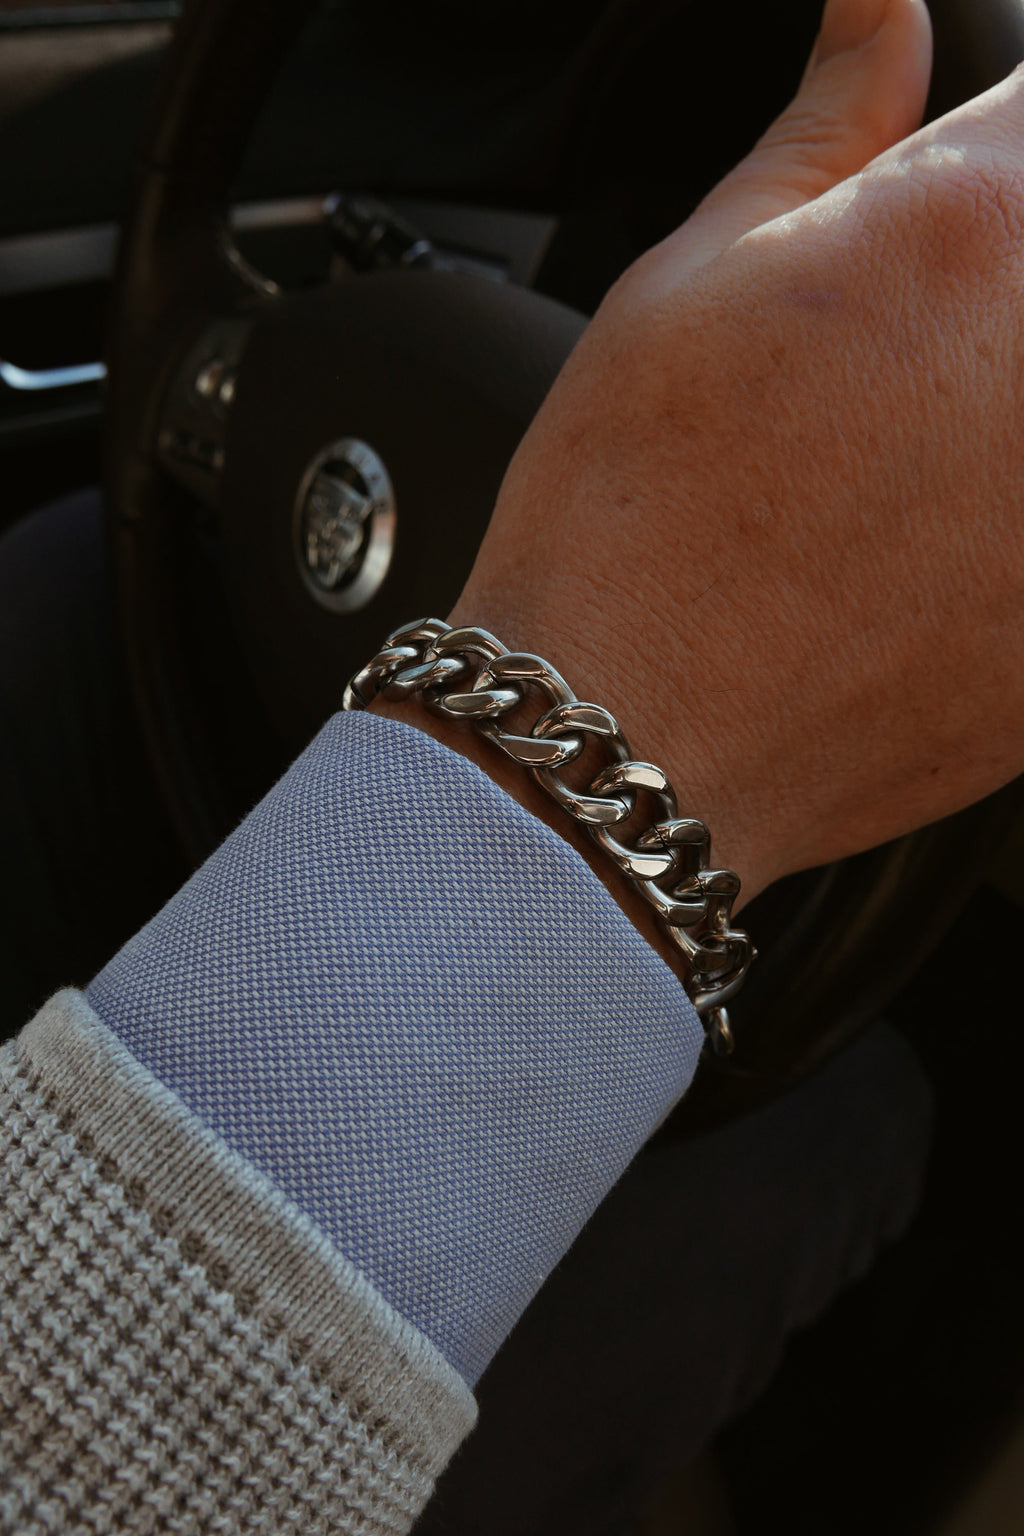 Carter Man Bracelet - Boutique Minimaliste